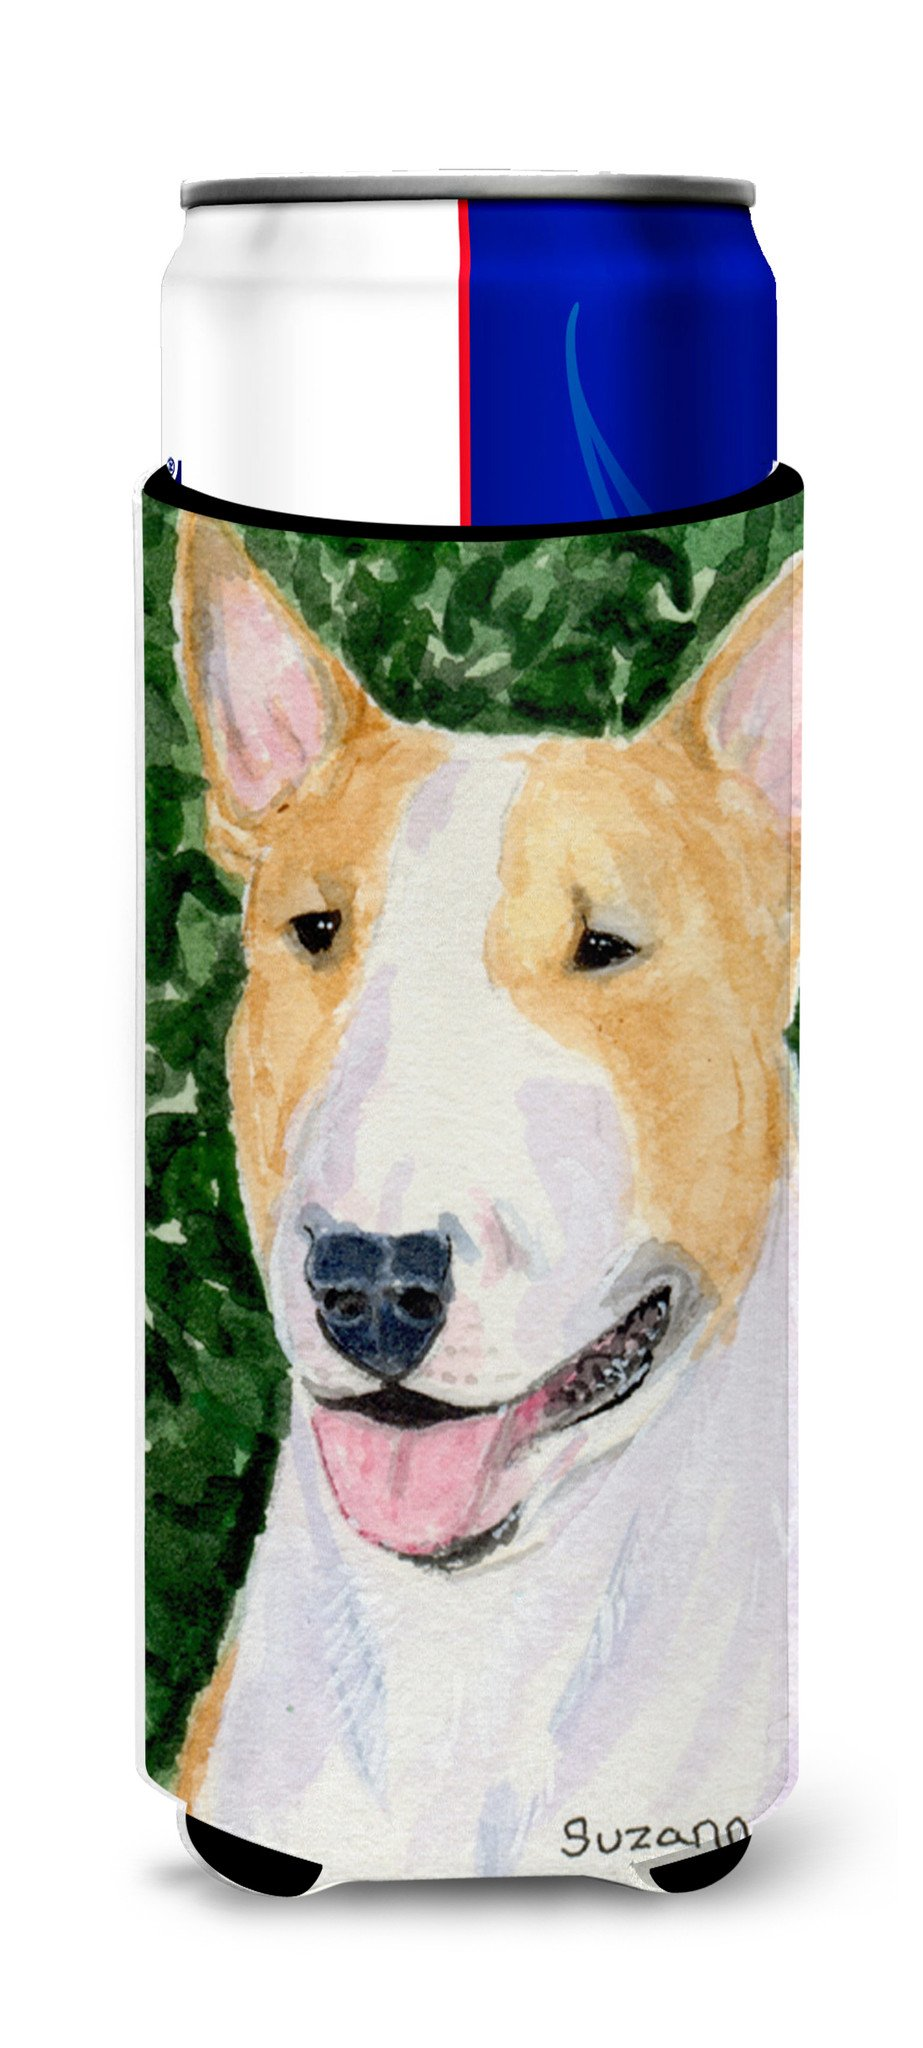 Bull Terrier Ultra Beverage Insulators for slim cans SS8873MUK by Caroline's Treasures